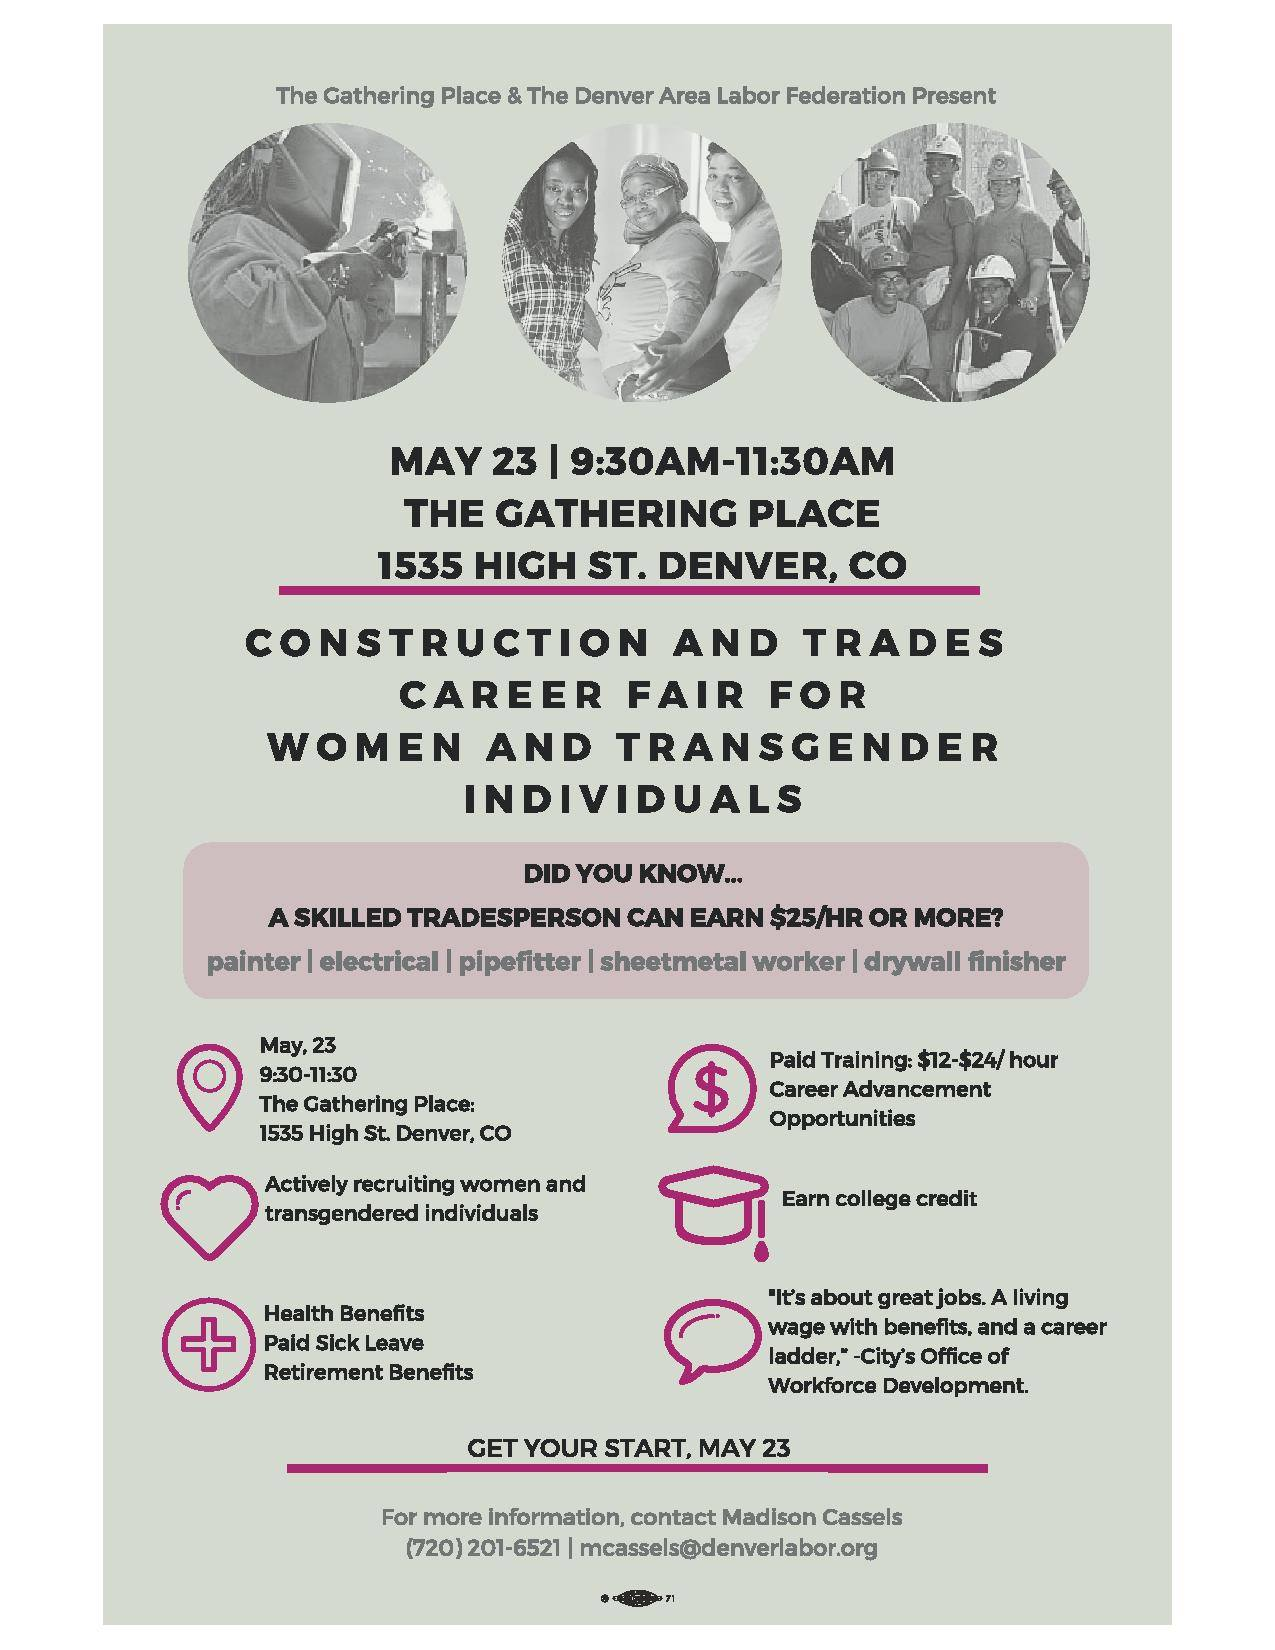 Construction and Trades Career Fair on May 23rd